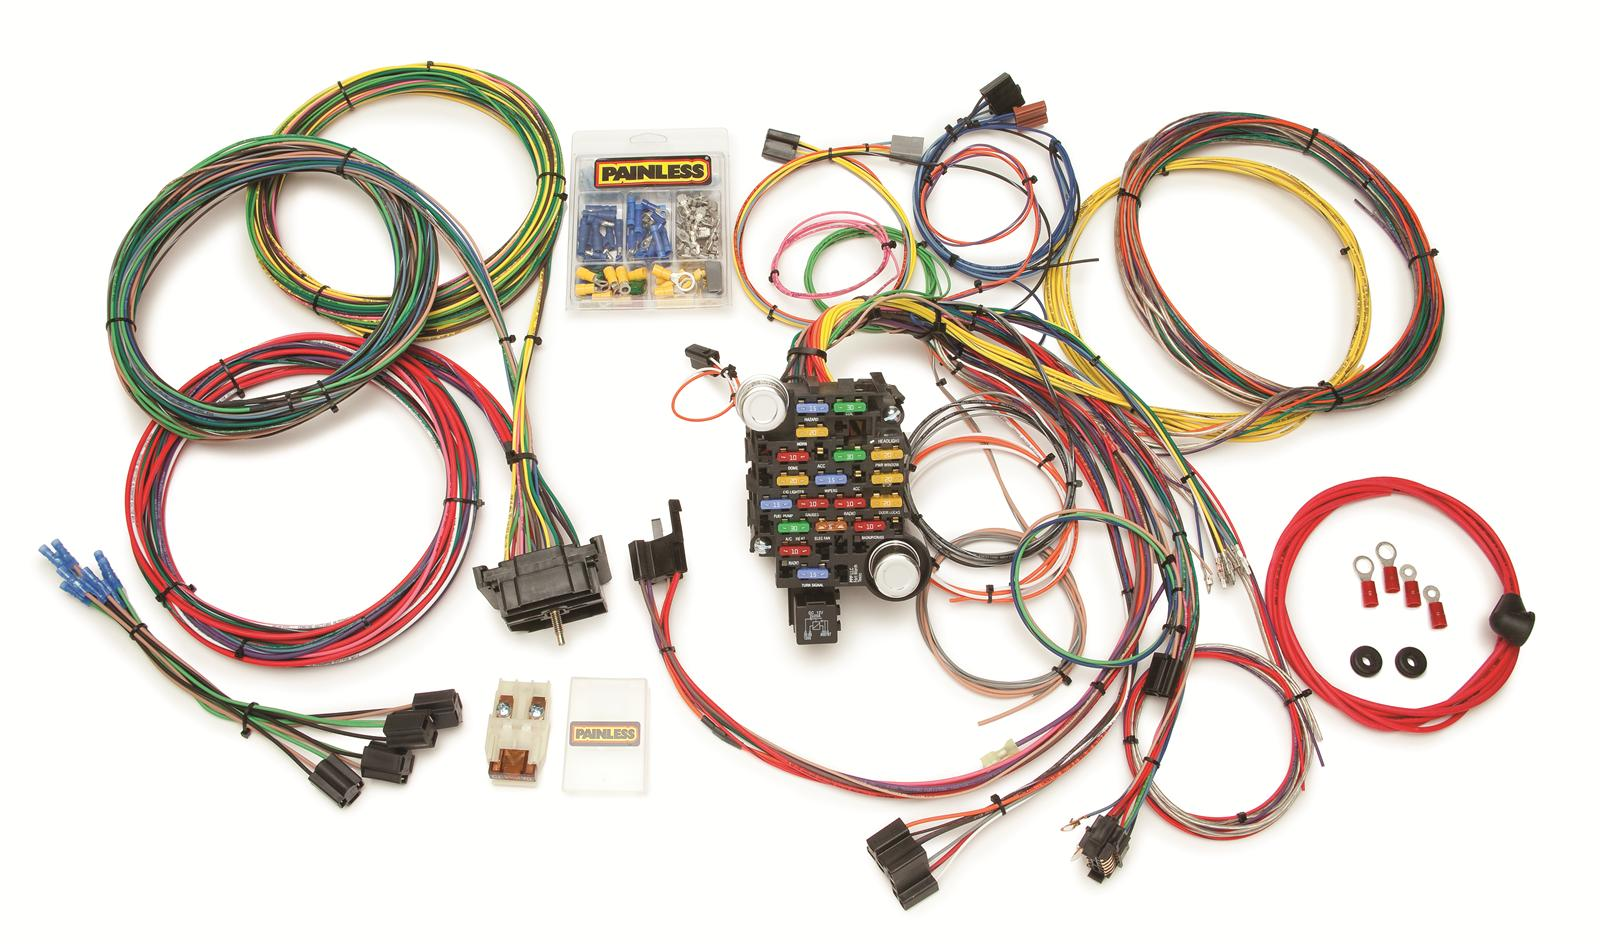 prf 10206_xl painless performance gmc chevy truck harnesses 10206 free Chevy Engine Wiring Harness at crackthecode.co